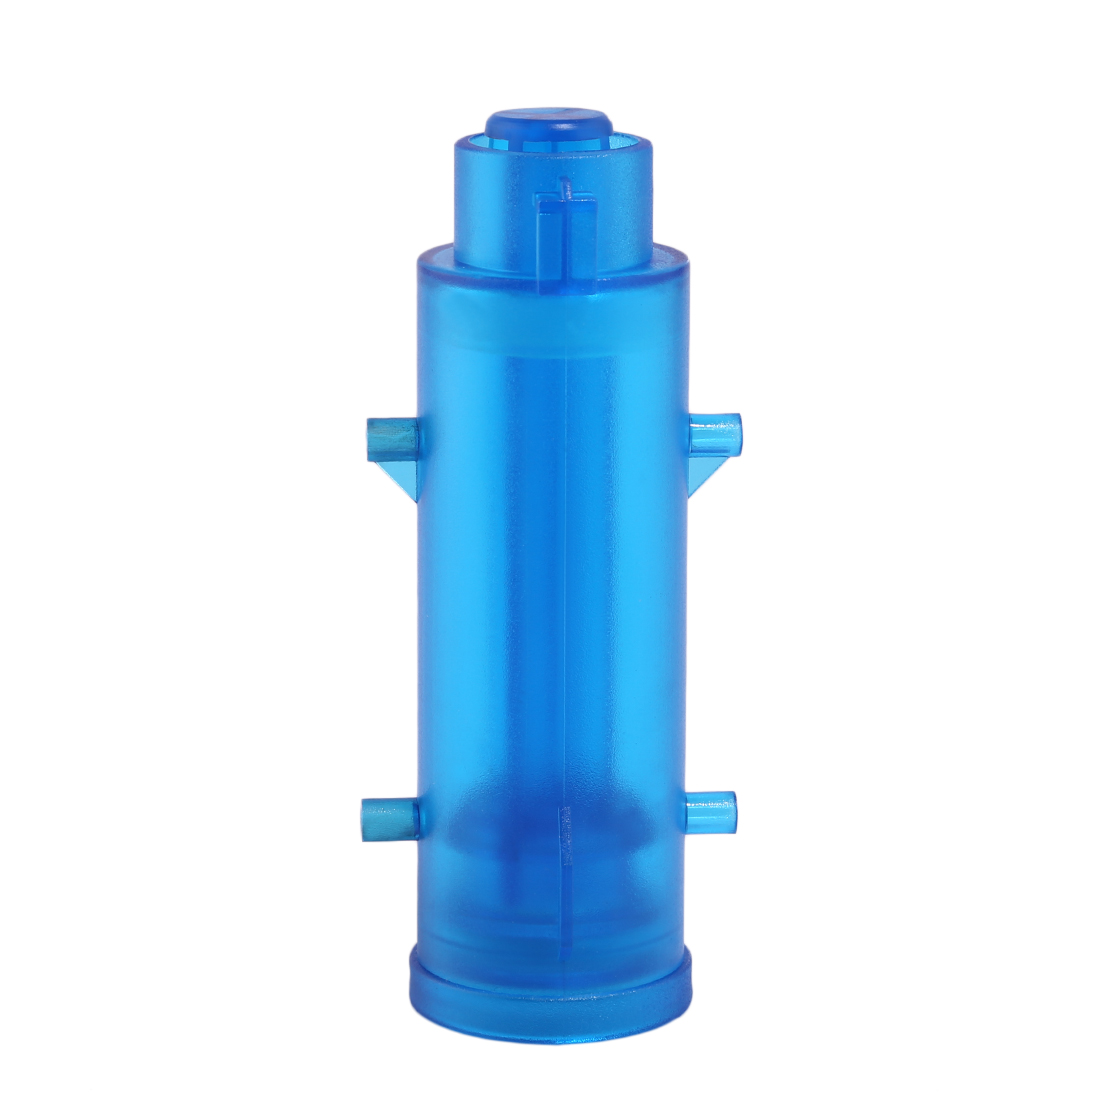 Worker Retaliator Type B Pump for Worker Retaliator Shell Set Transparent Blue